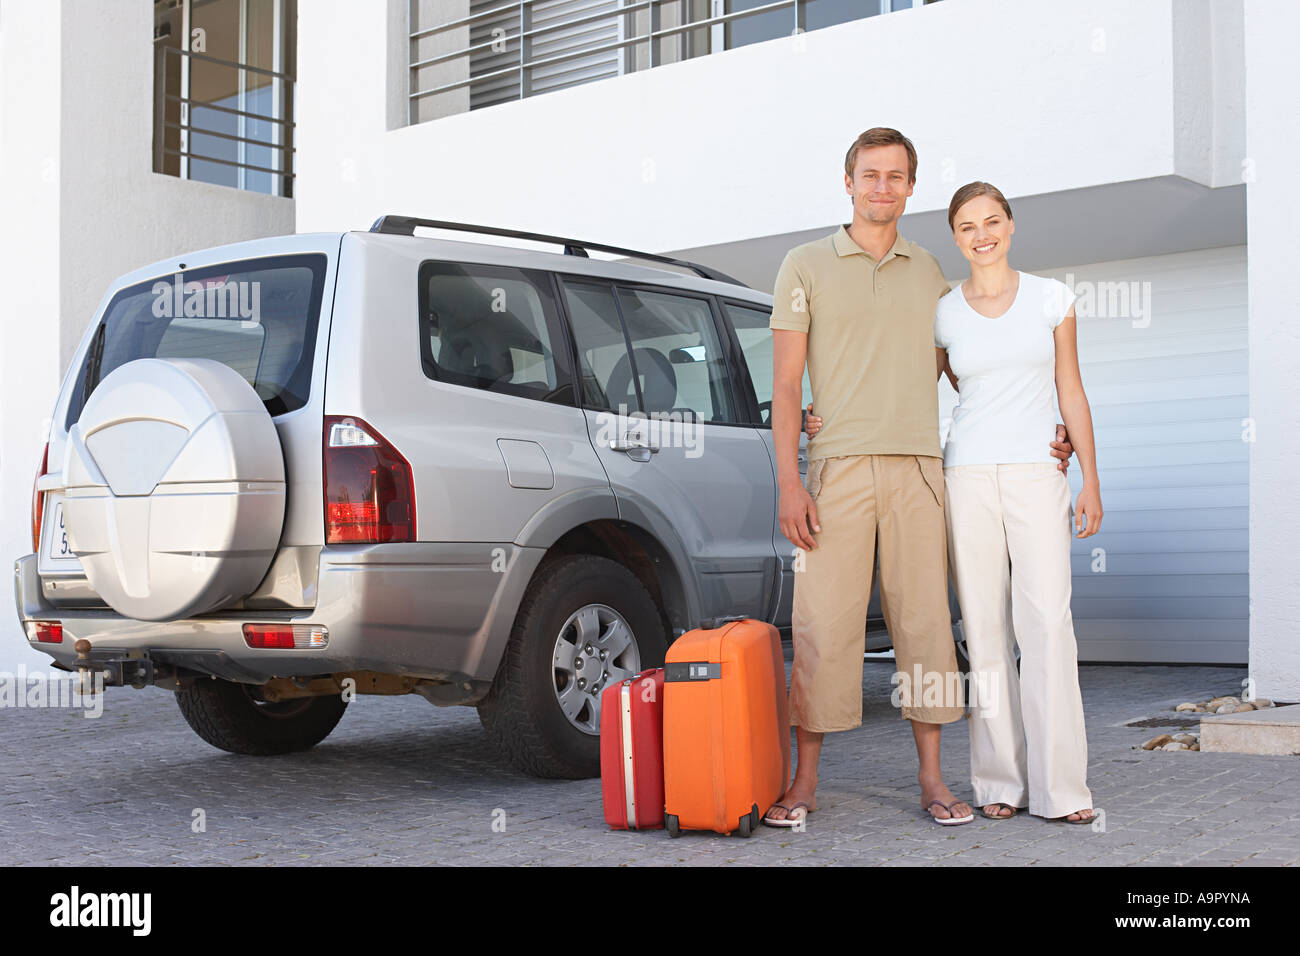 Couple stood by car with suitcases - Stock Image